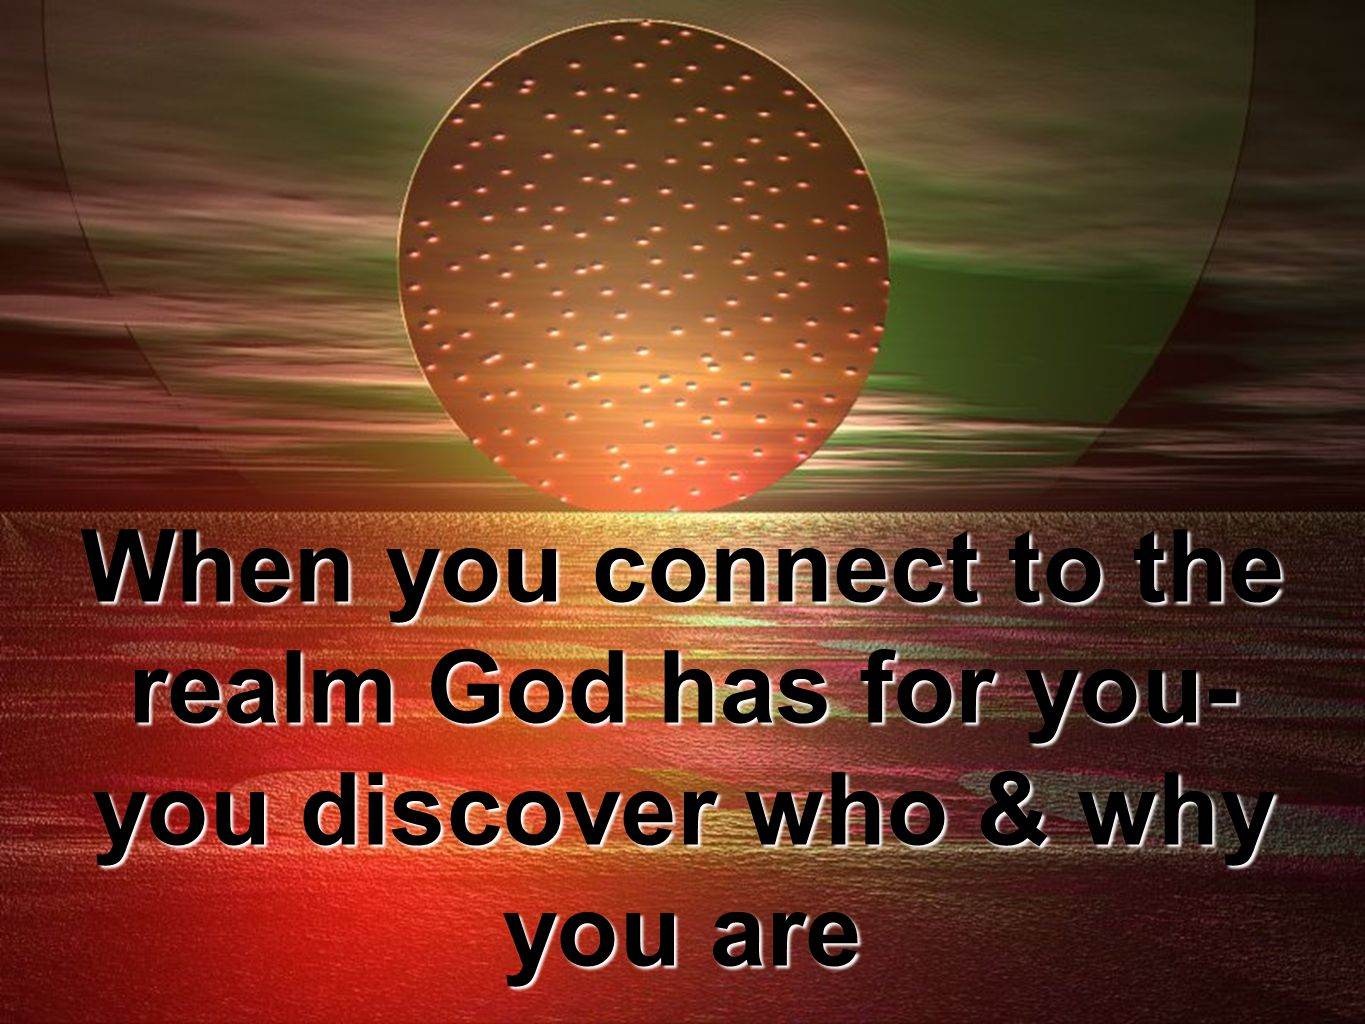 When you connect to the realm God has for you- you discover who & why you are